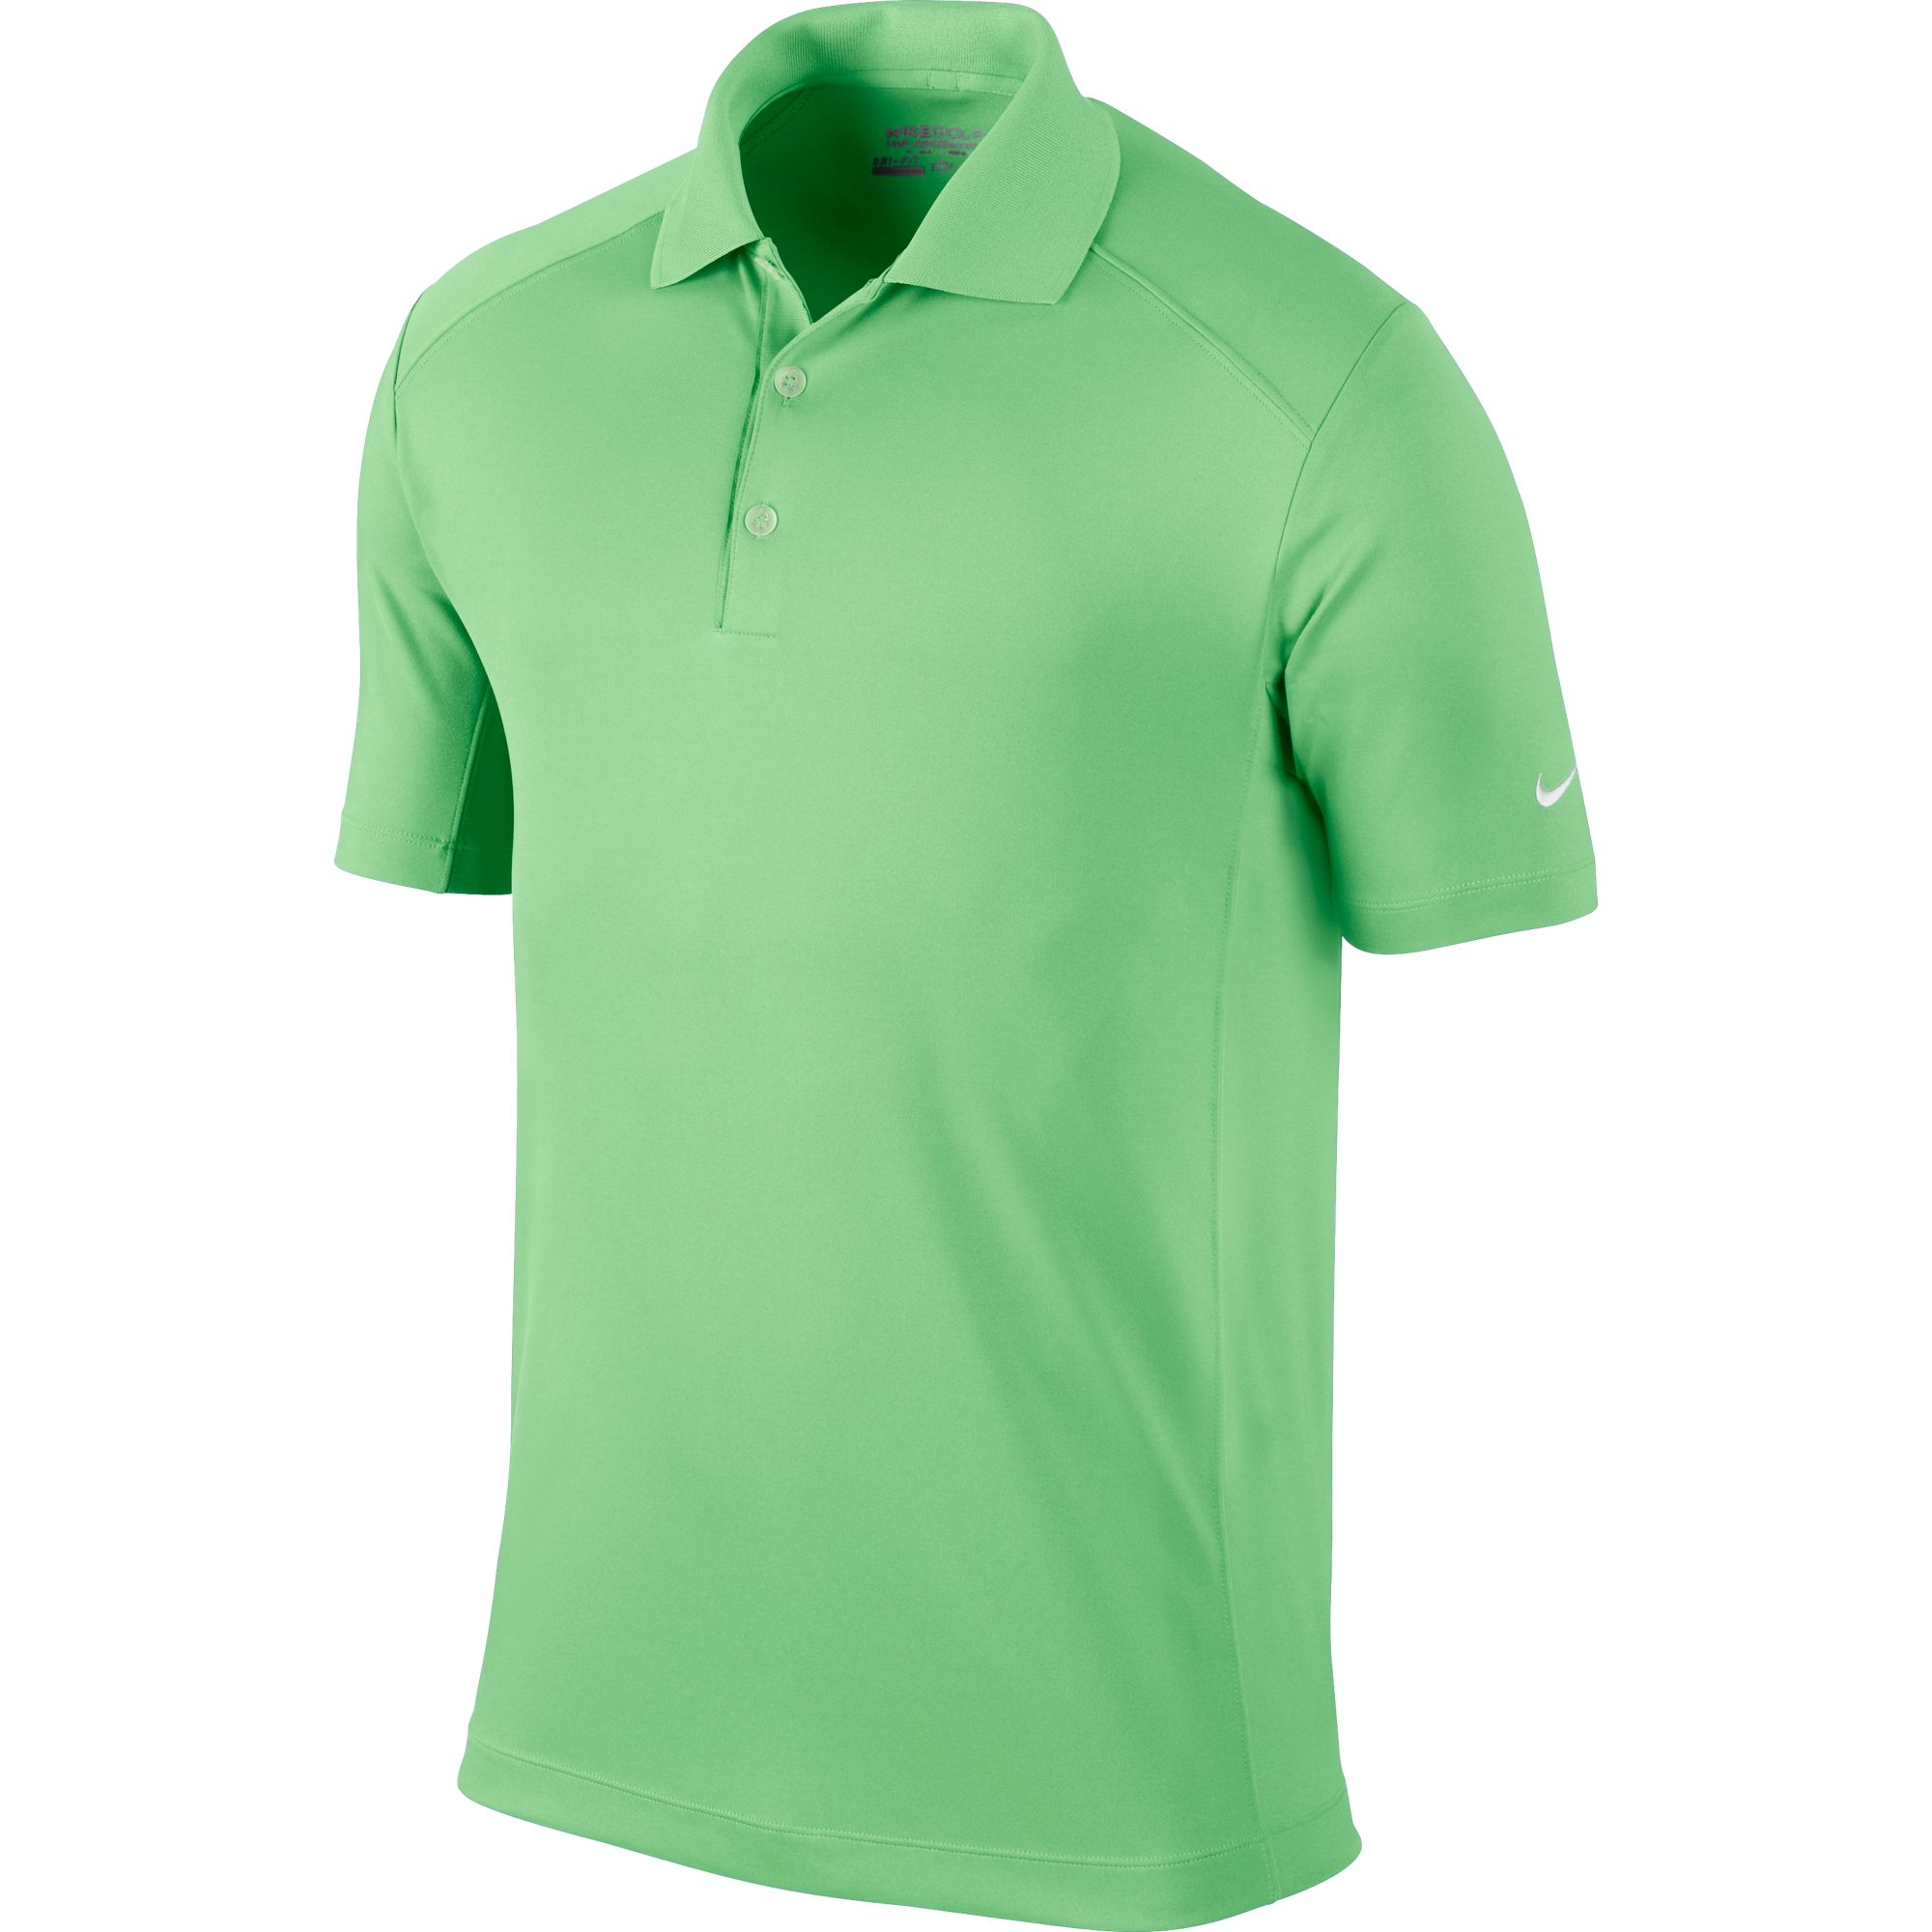 Men's Victory Solid Polo Golf Shirt, Bright Grn,Kelly,Emerald, swatch